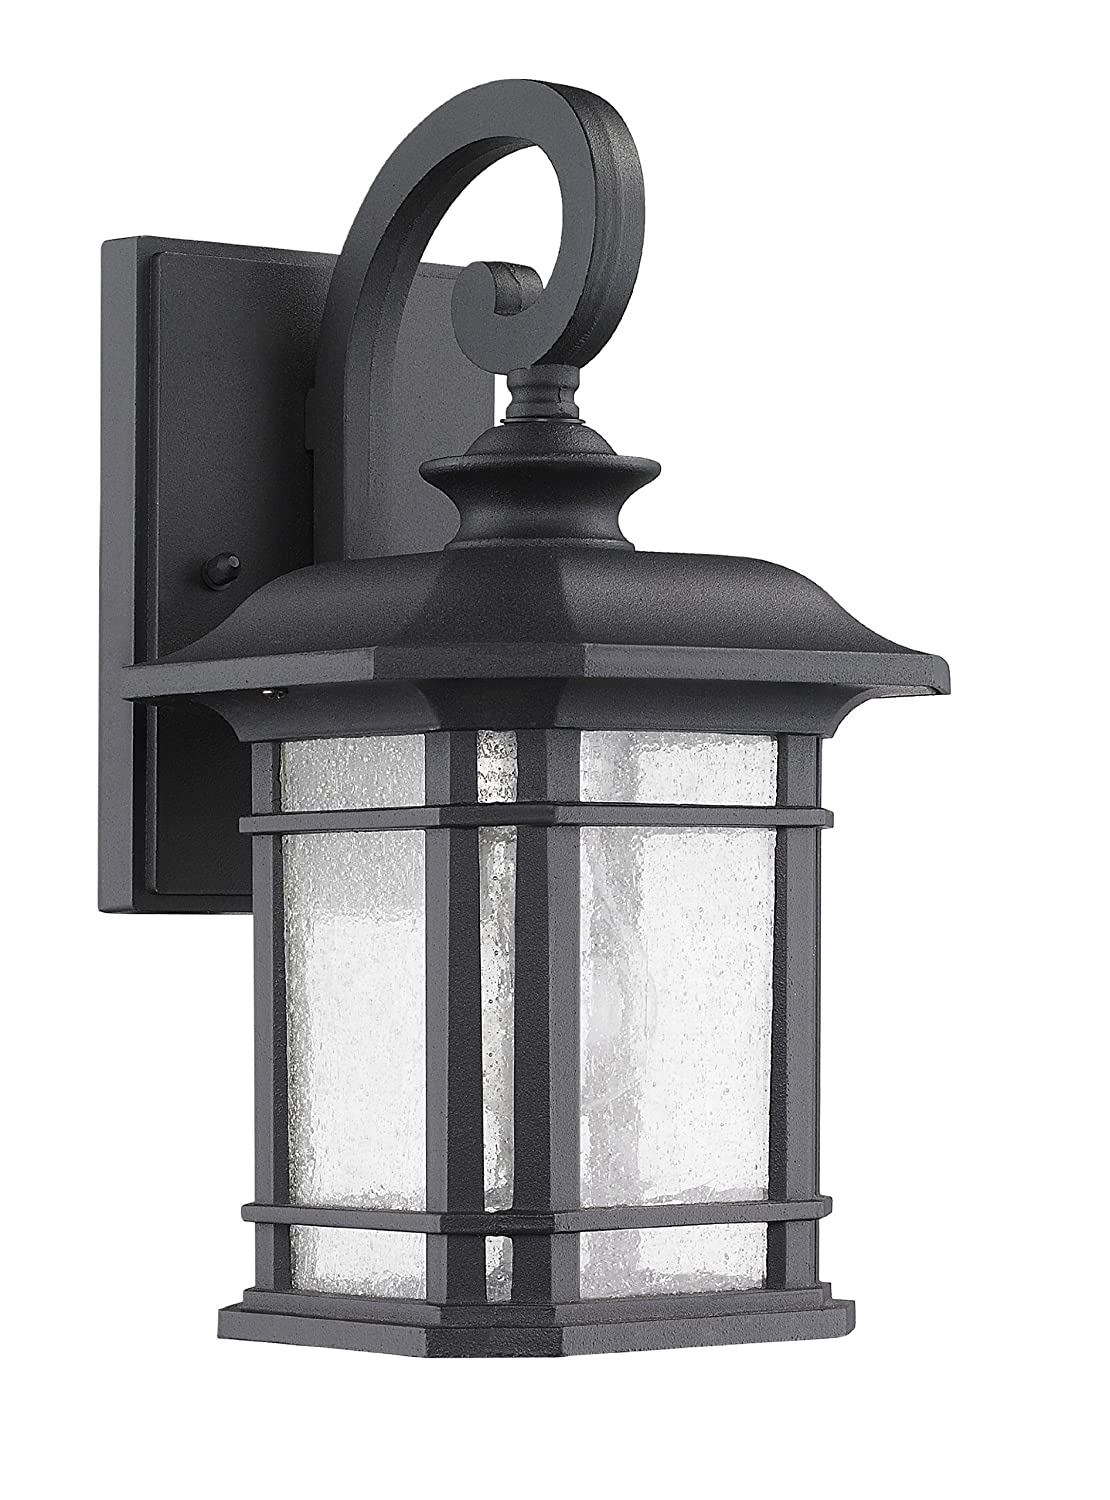 chloe lighting chbkod franklin transitional light  - chloe lighting chbkod franklin transitional light black outdoorwall sconce  height  wall porch lights  amazoncom